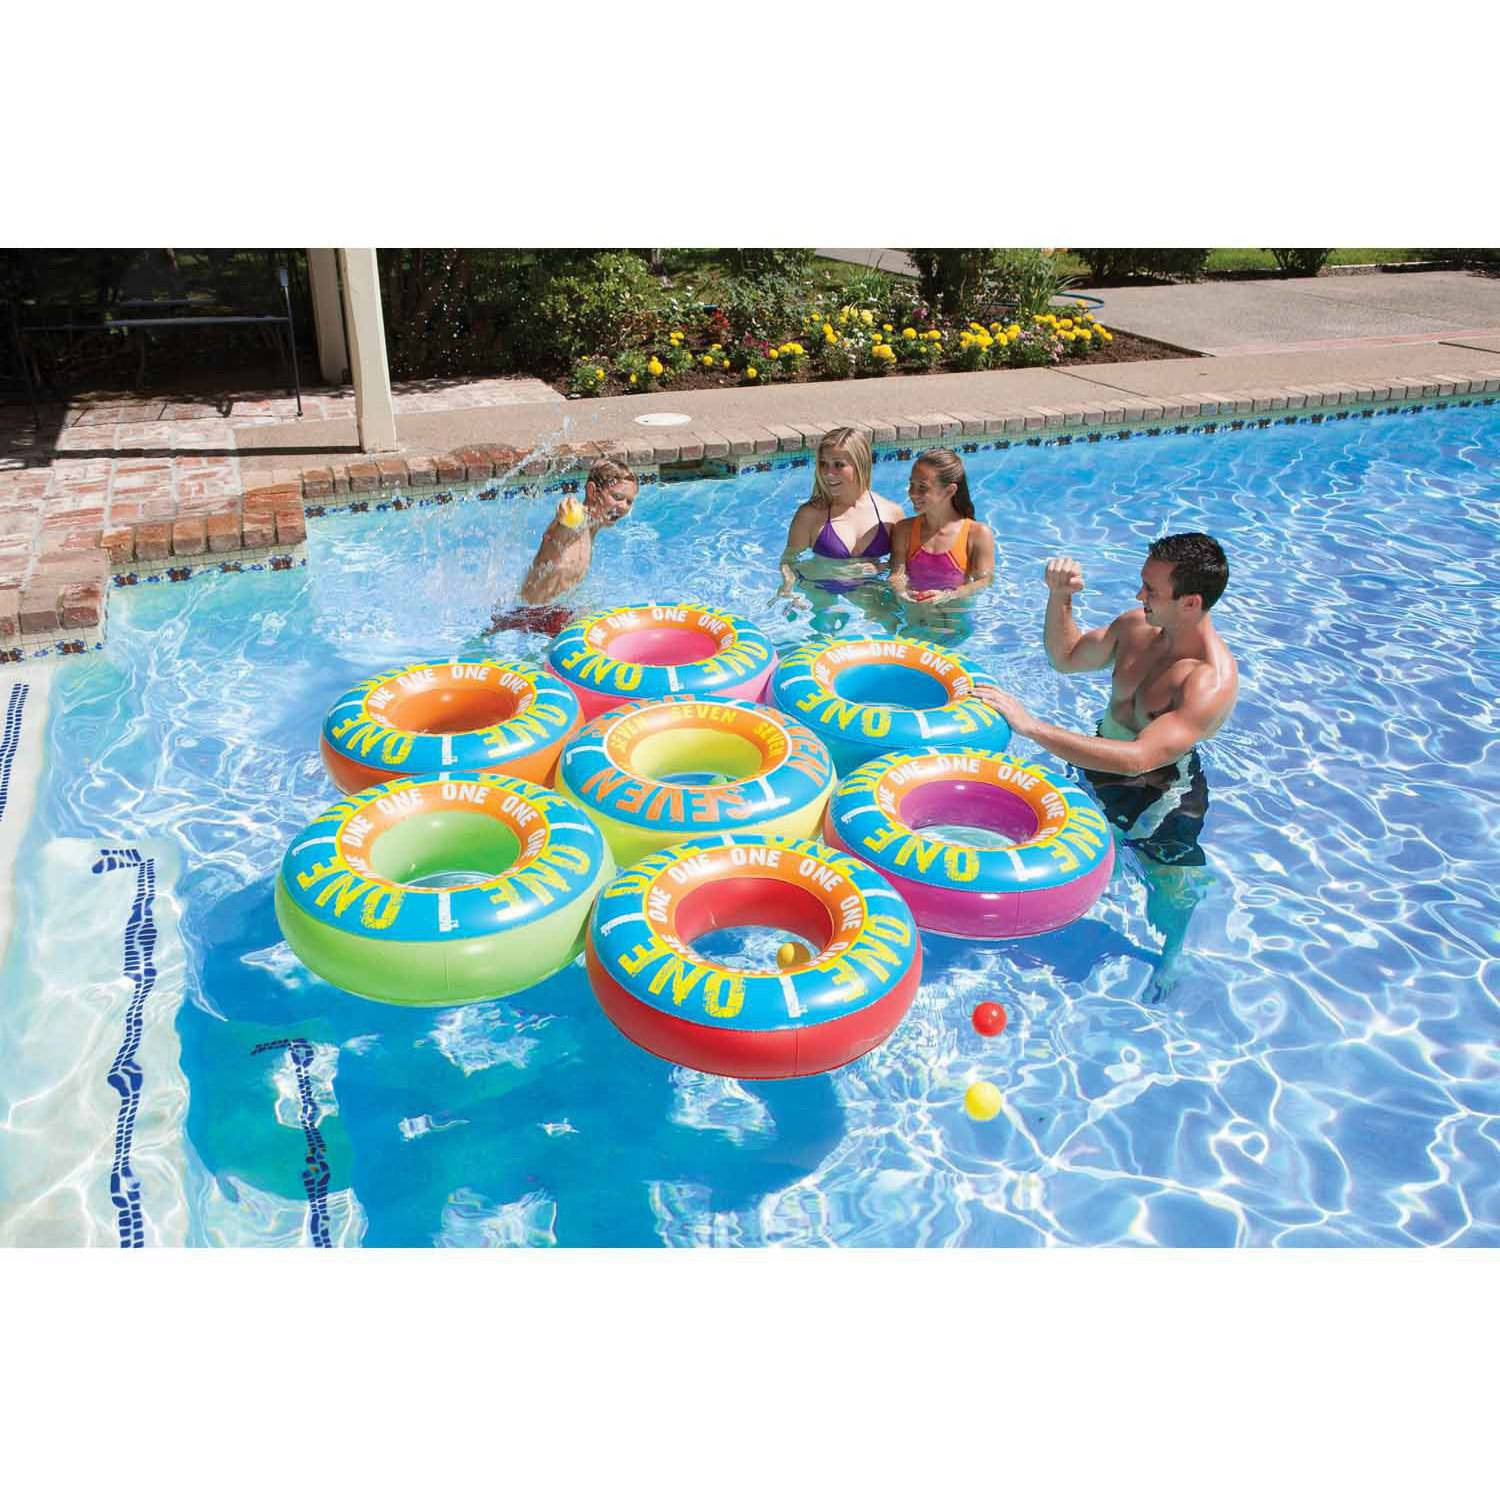 Poolmaster Ring-A-Ding-Ding Island/Lucky 7 Game